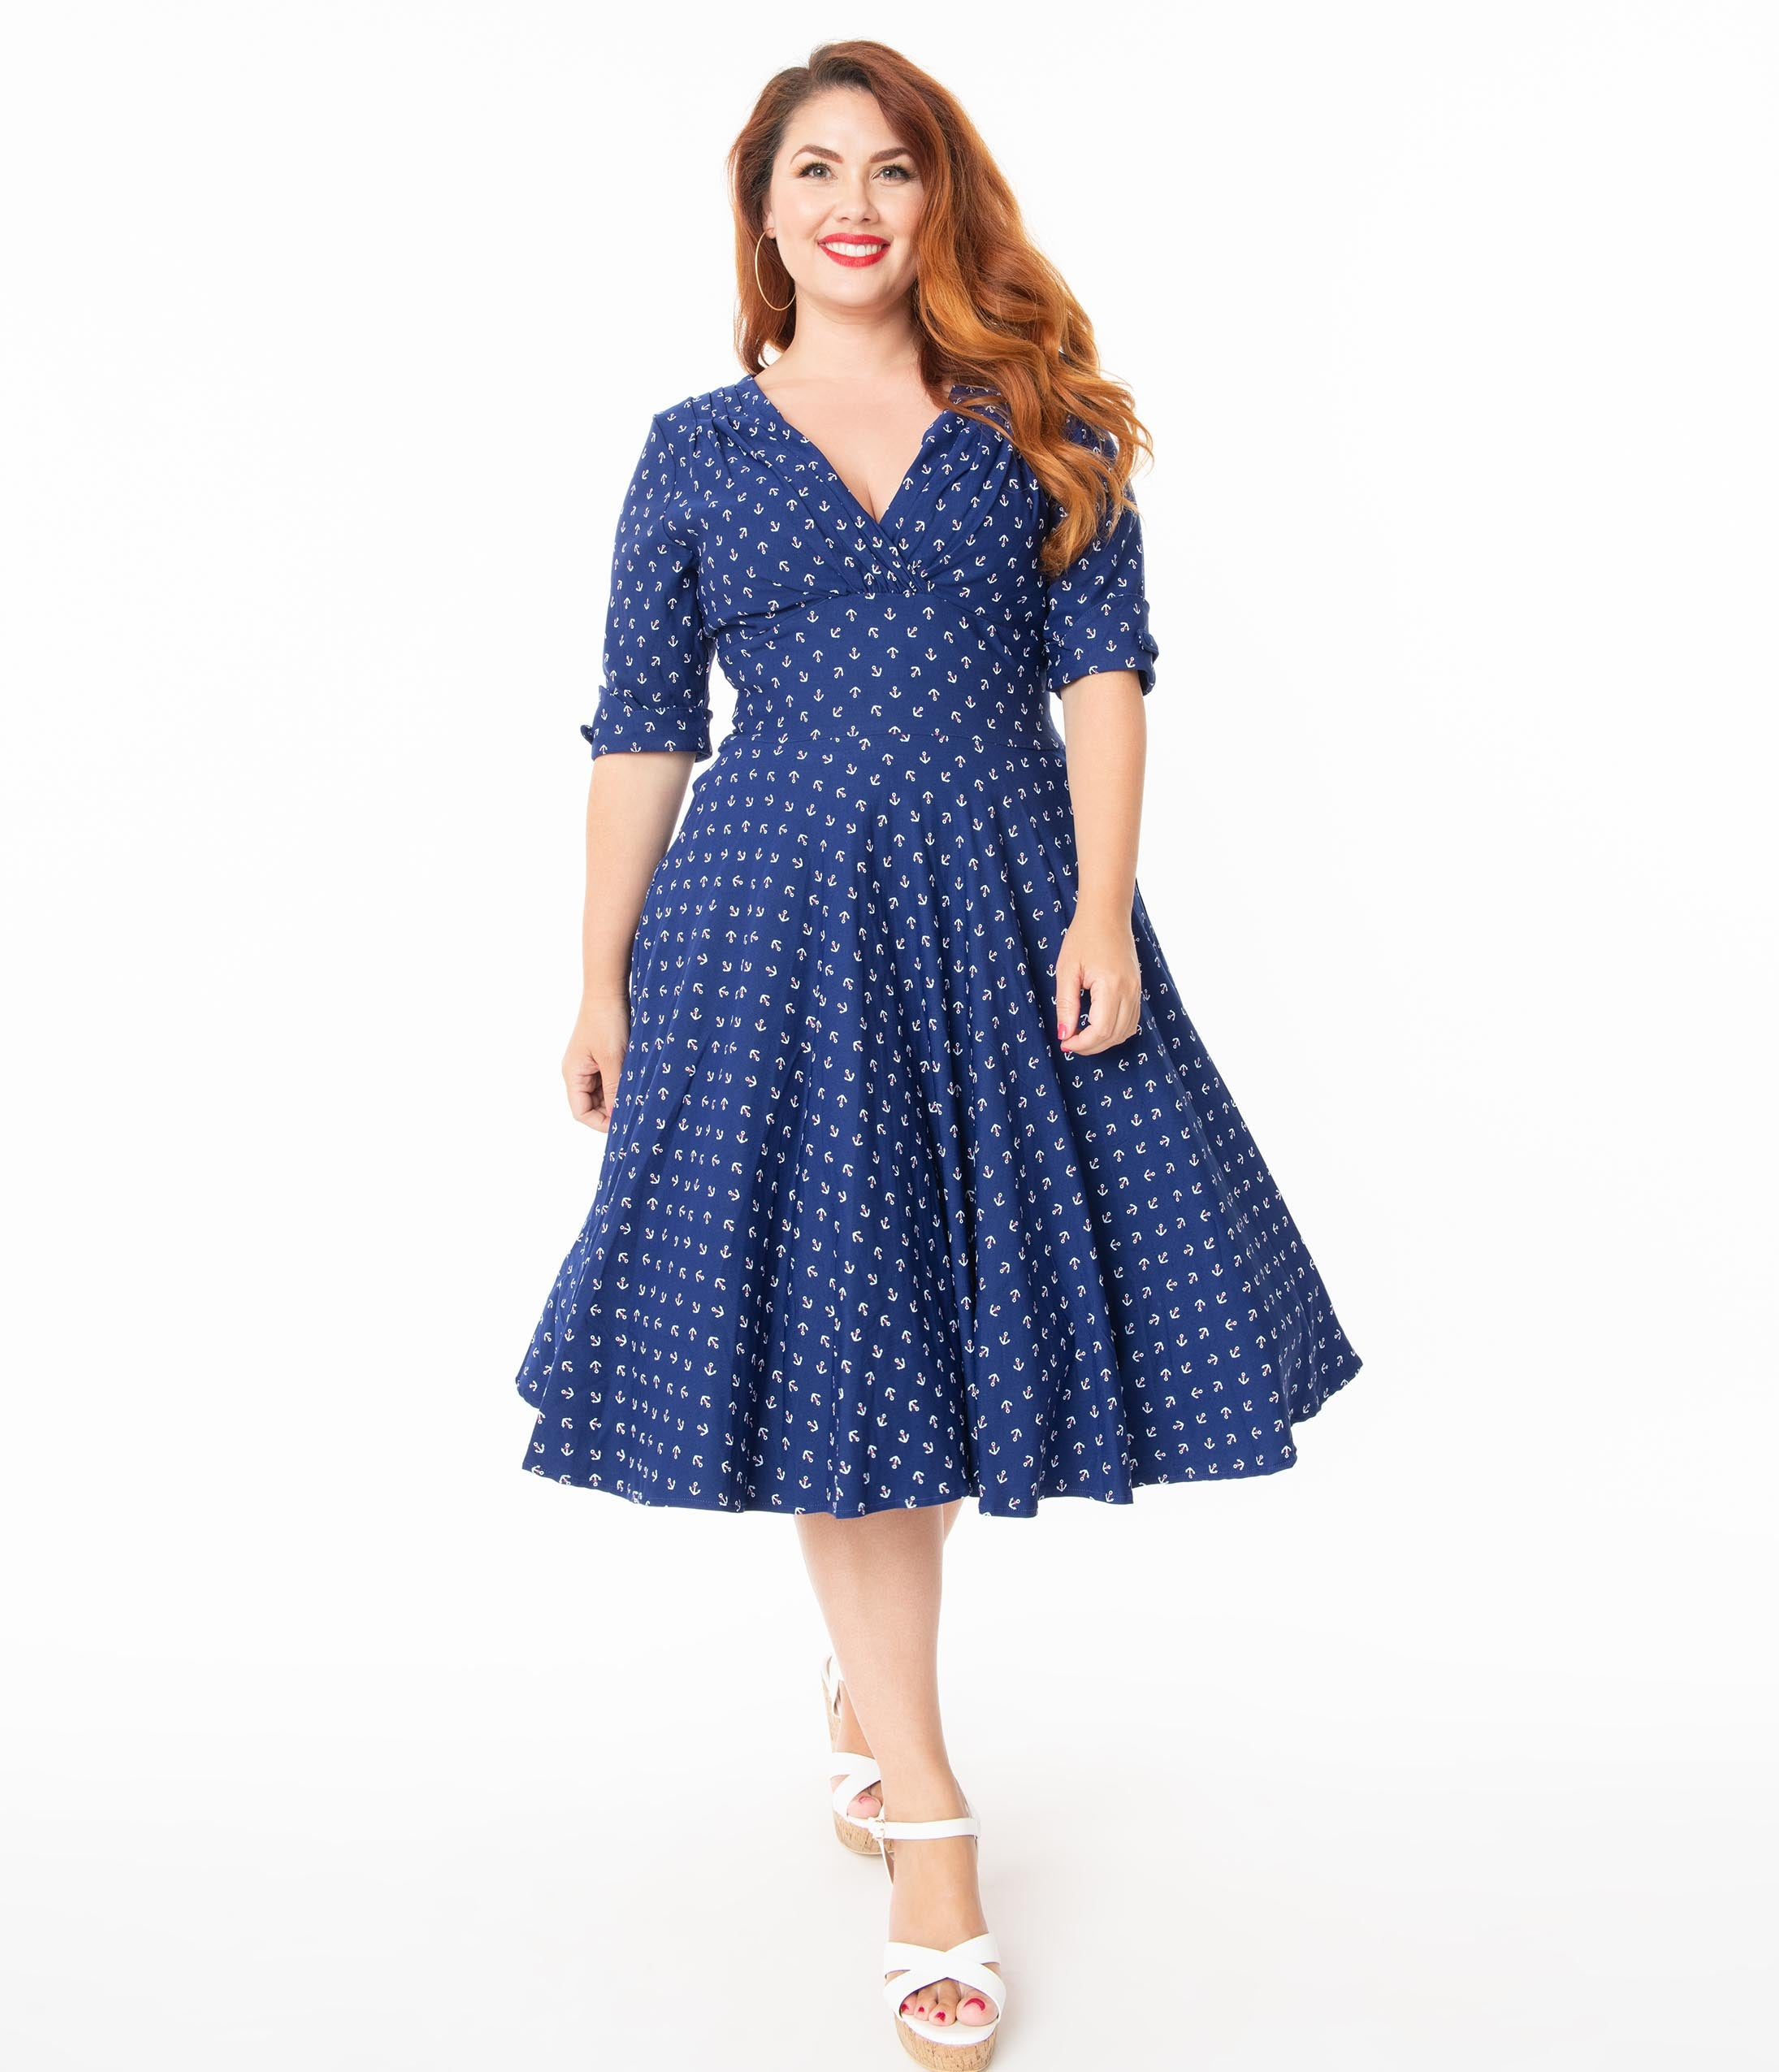 1950s Plus Size Dresses, Swing Dresses Unique Vintage Plus Size 1950S Blue Anchor Print Delores Swing Dress With Sleeves $92.00 AT vintagedancer.com